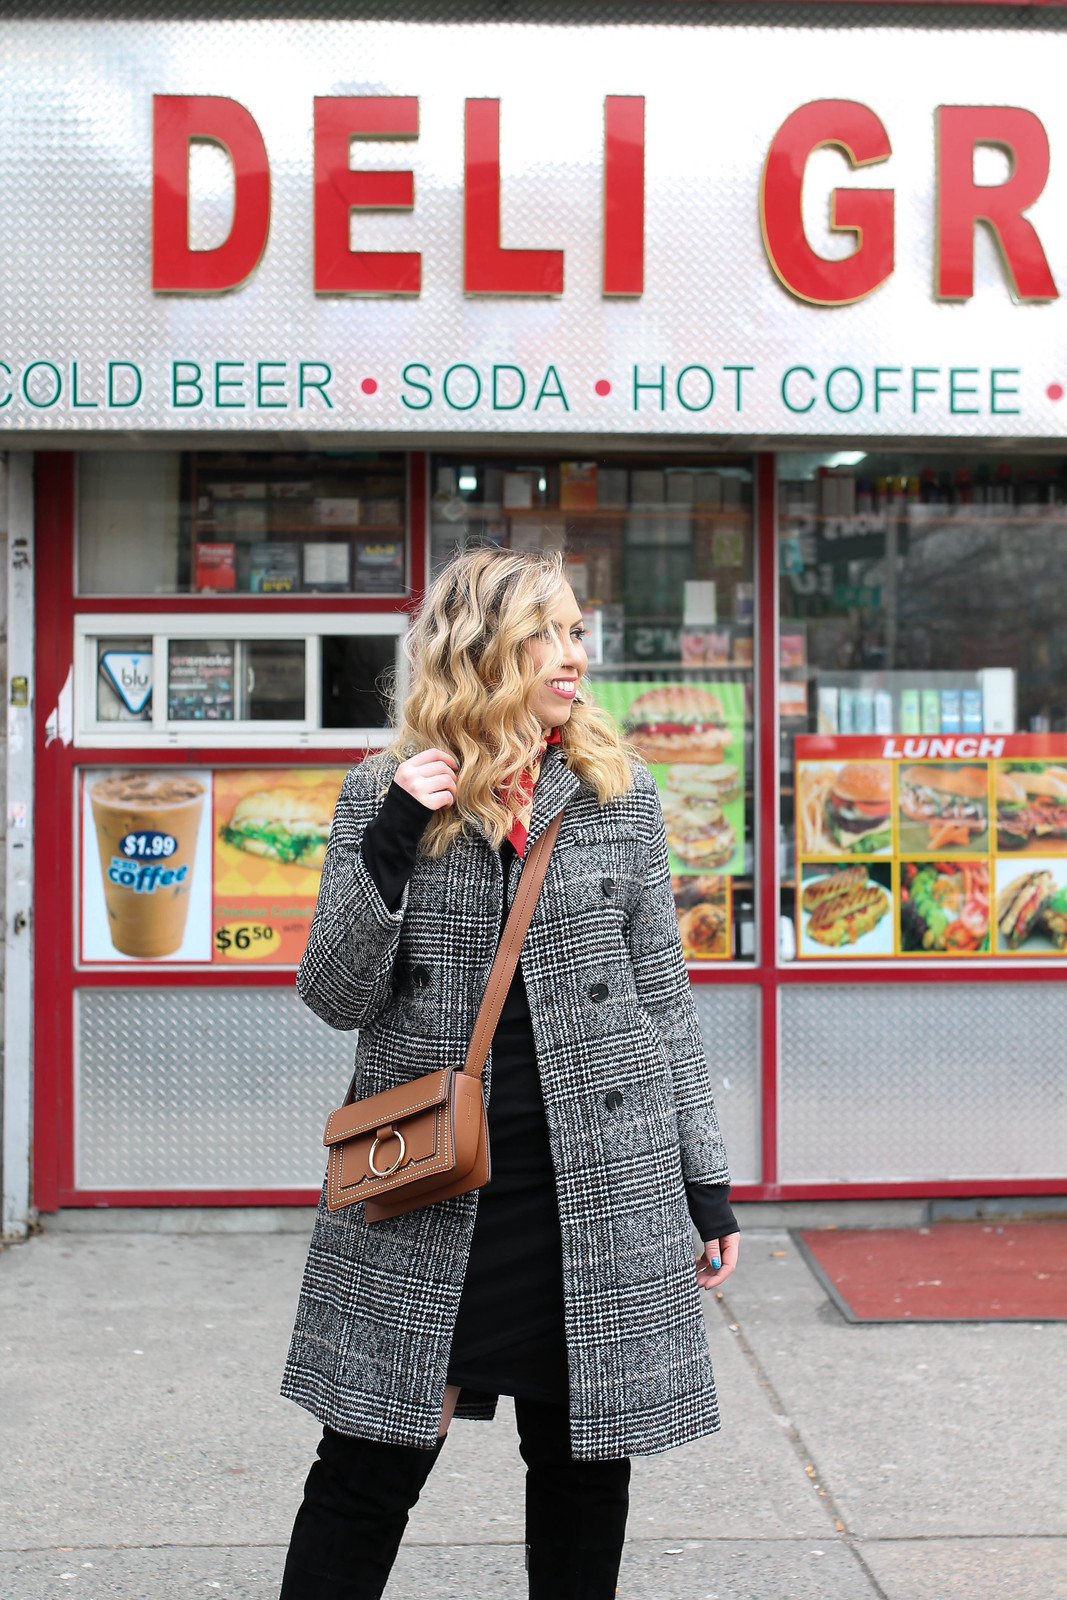 New York Winter All Black Outfit Plaid Coat Melie Bianco Cheri Bag Curly Blonde Hair